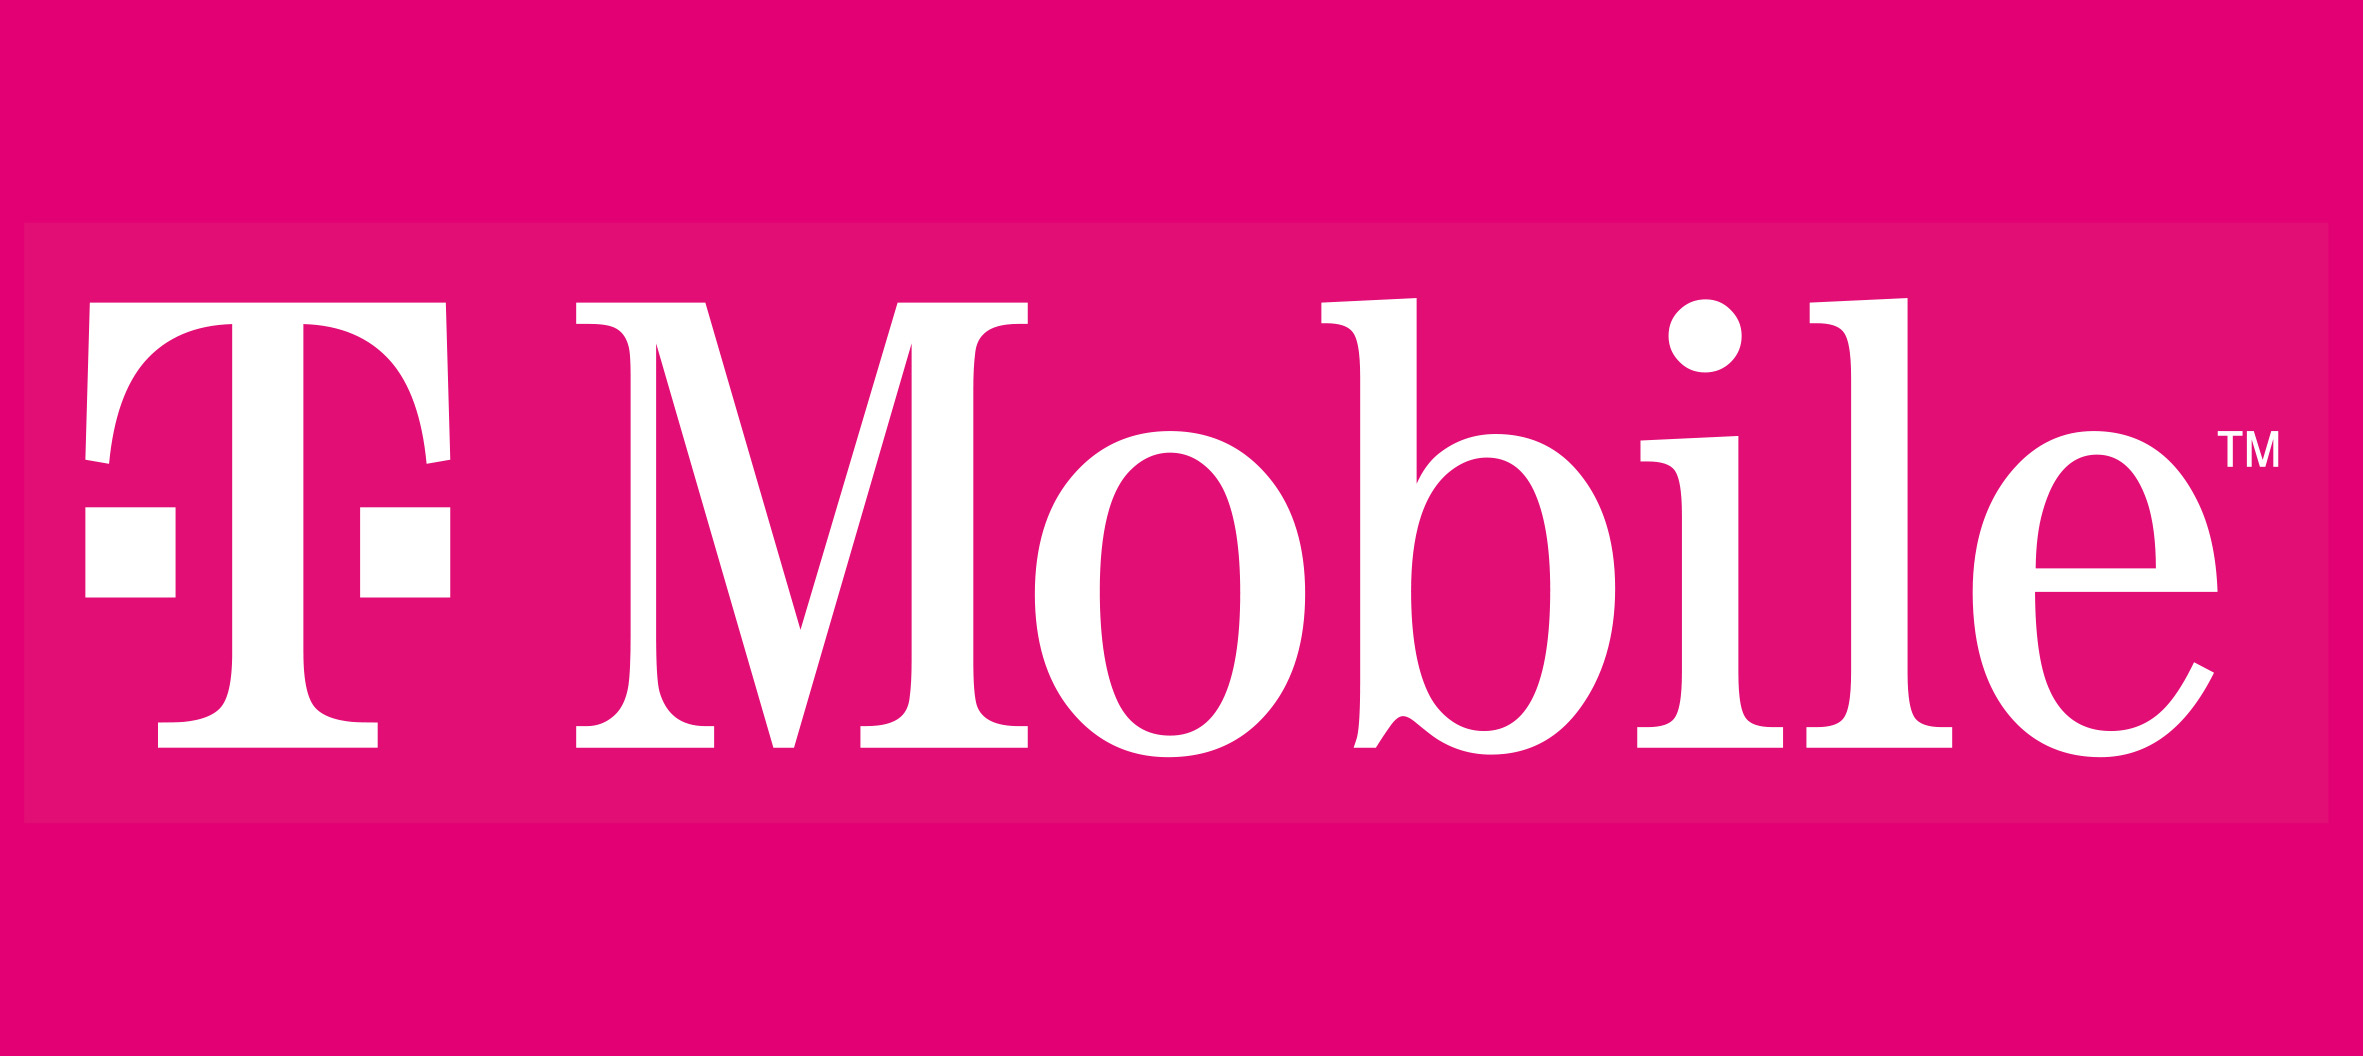 The T-Mobile Hack: At Least 49 Million Accounts Compromised...